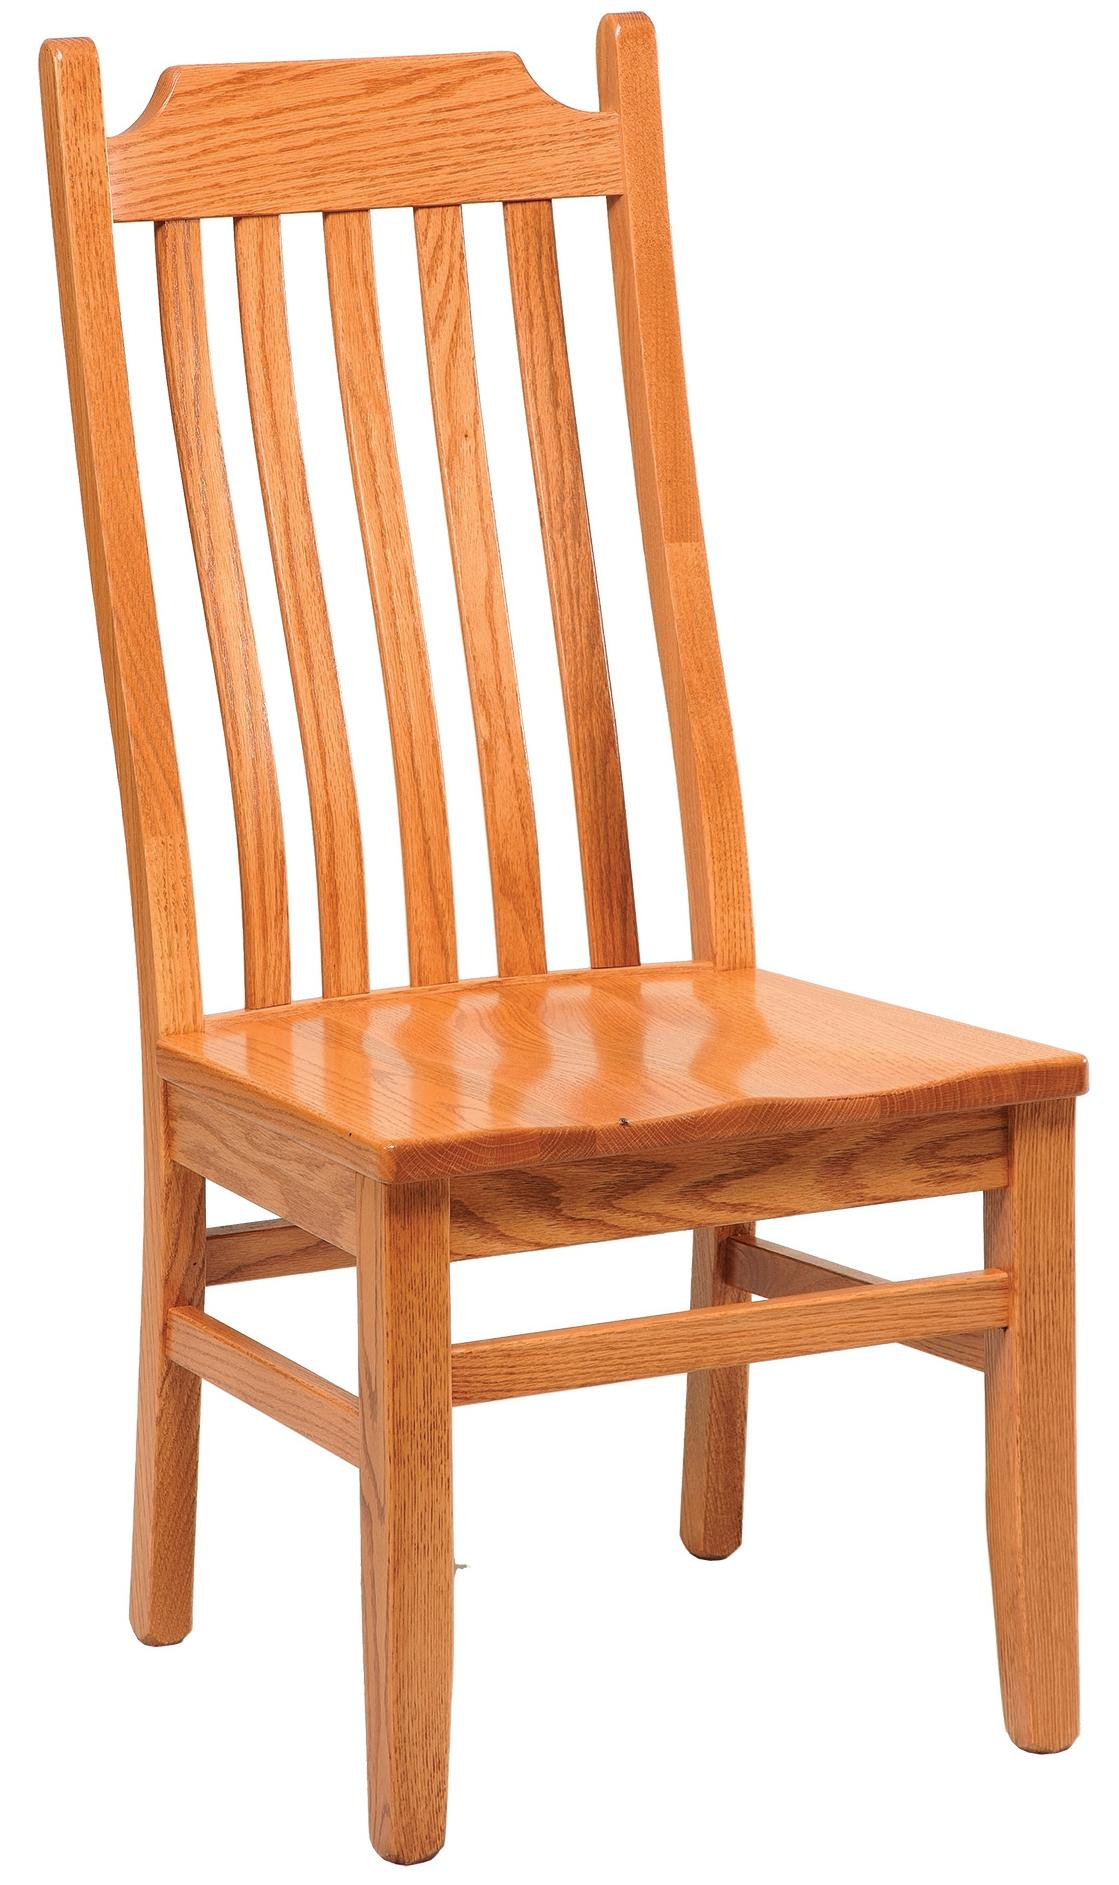 Chairs and Barstools Shaker Lumbar Side Chair by Daniel's Amish at Lucas Furniture & Mattress